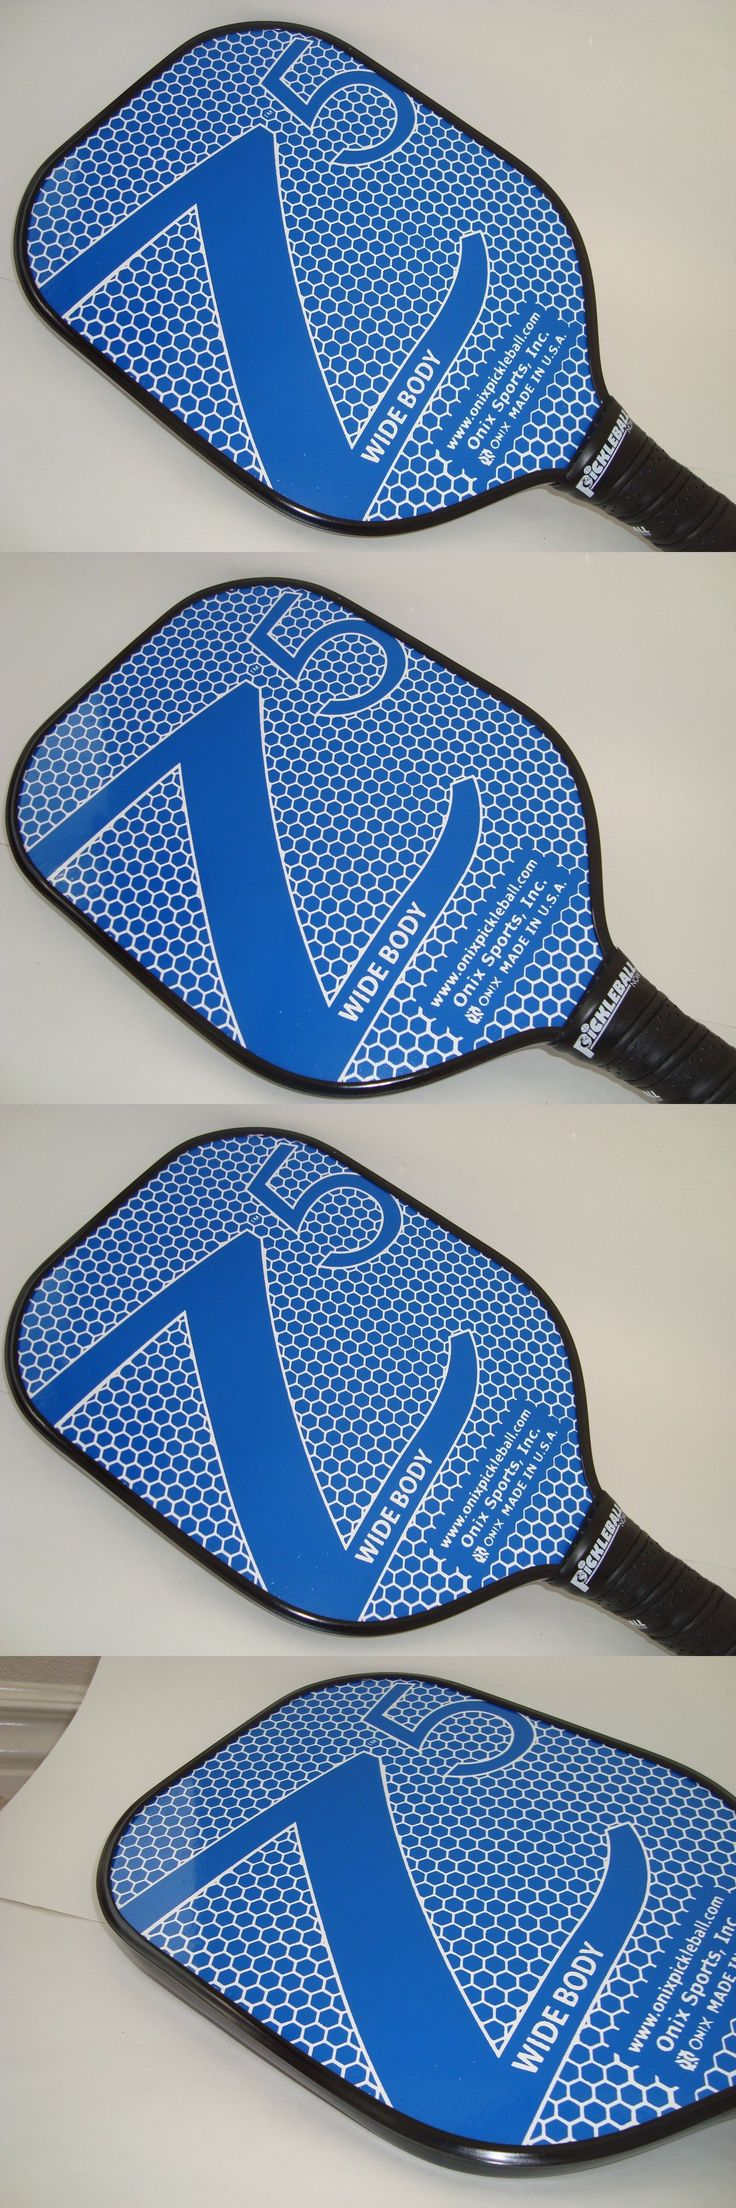 Other Tennis and Racquet Sports 159135: New Onix Z5 Composite Pickleball Paddle Nomex Core Light Durable Blue -> BUY IT NOW ONLY: $79.99 on eBay!